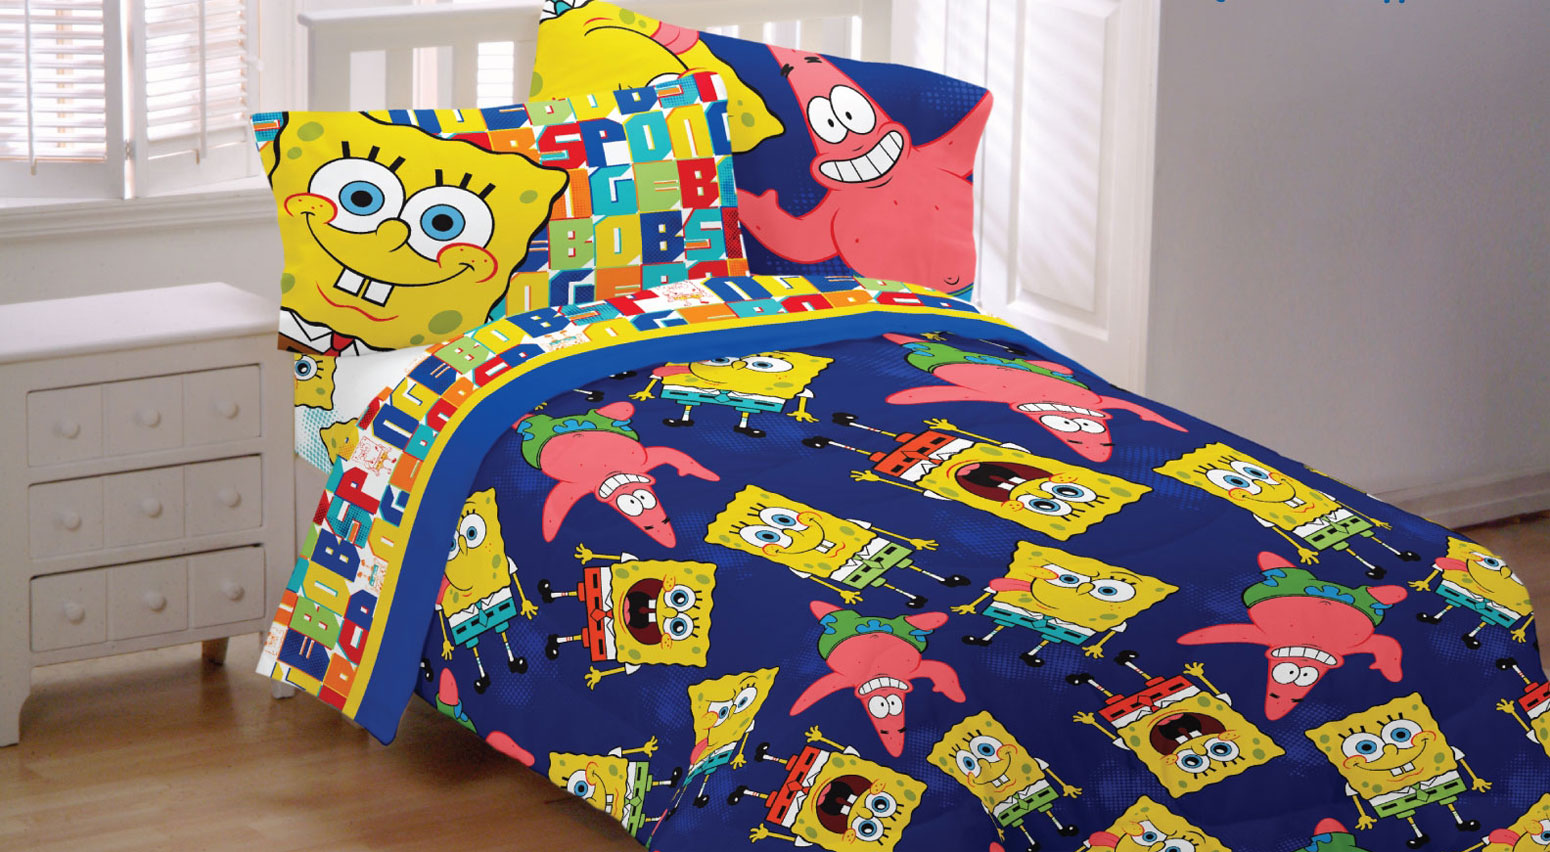 Perfect SpongeBob SquarePants Sheet Set   Walmart.com